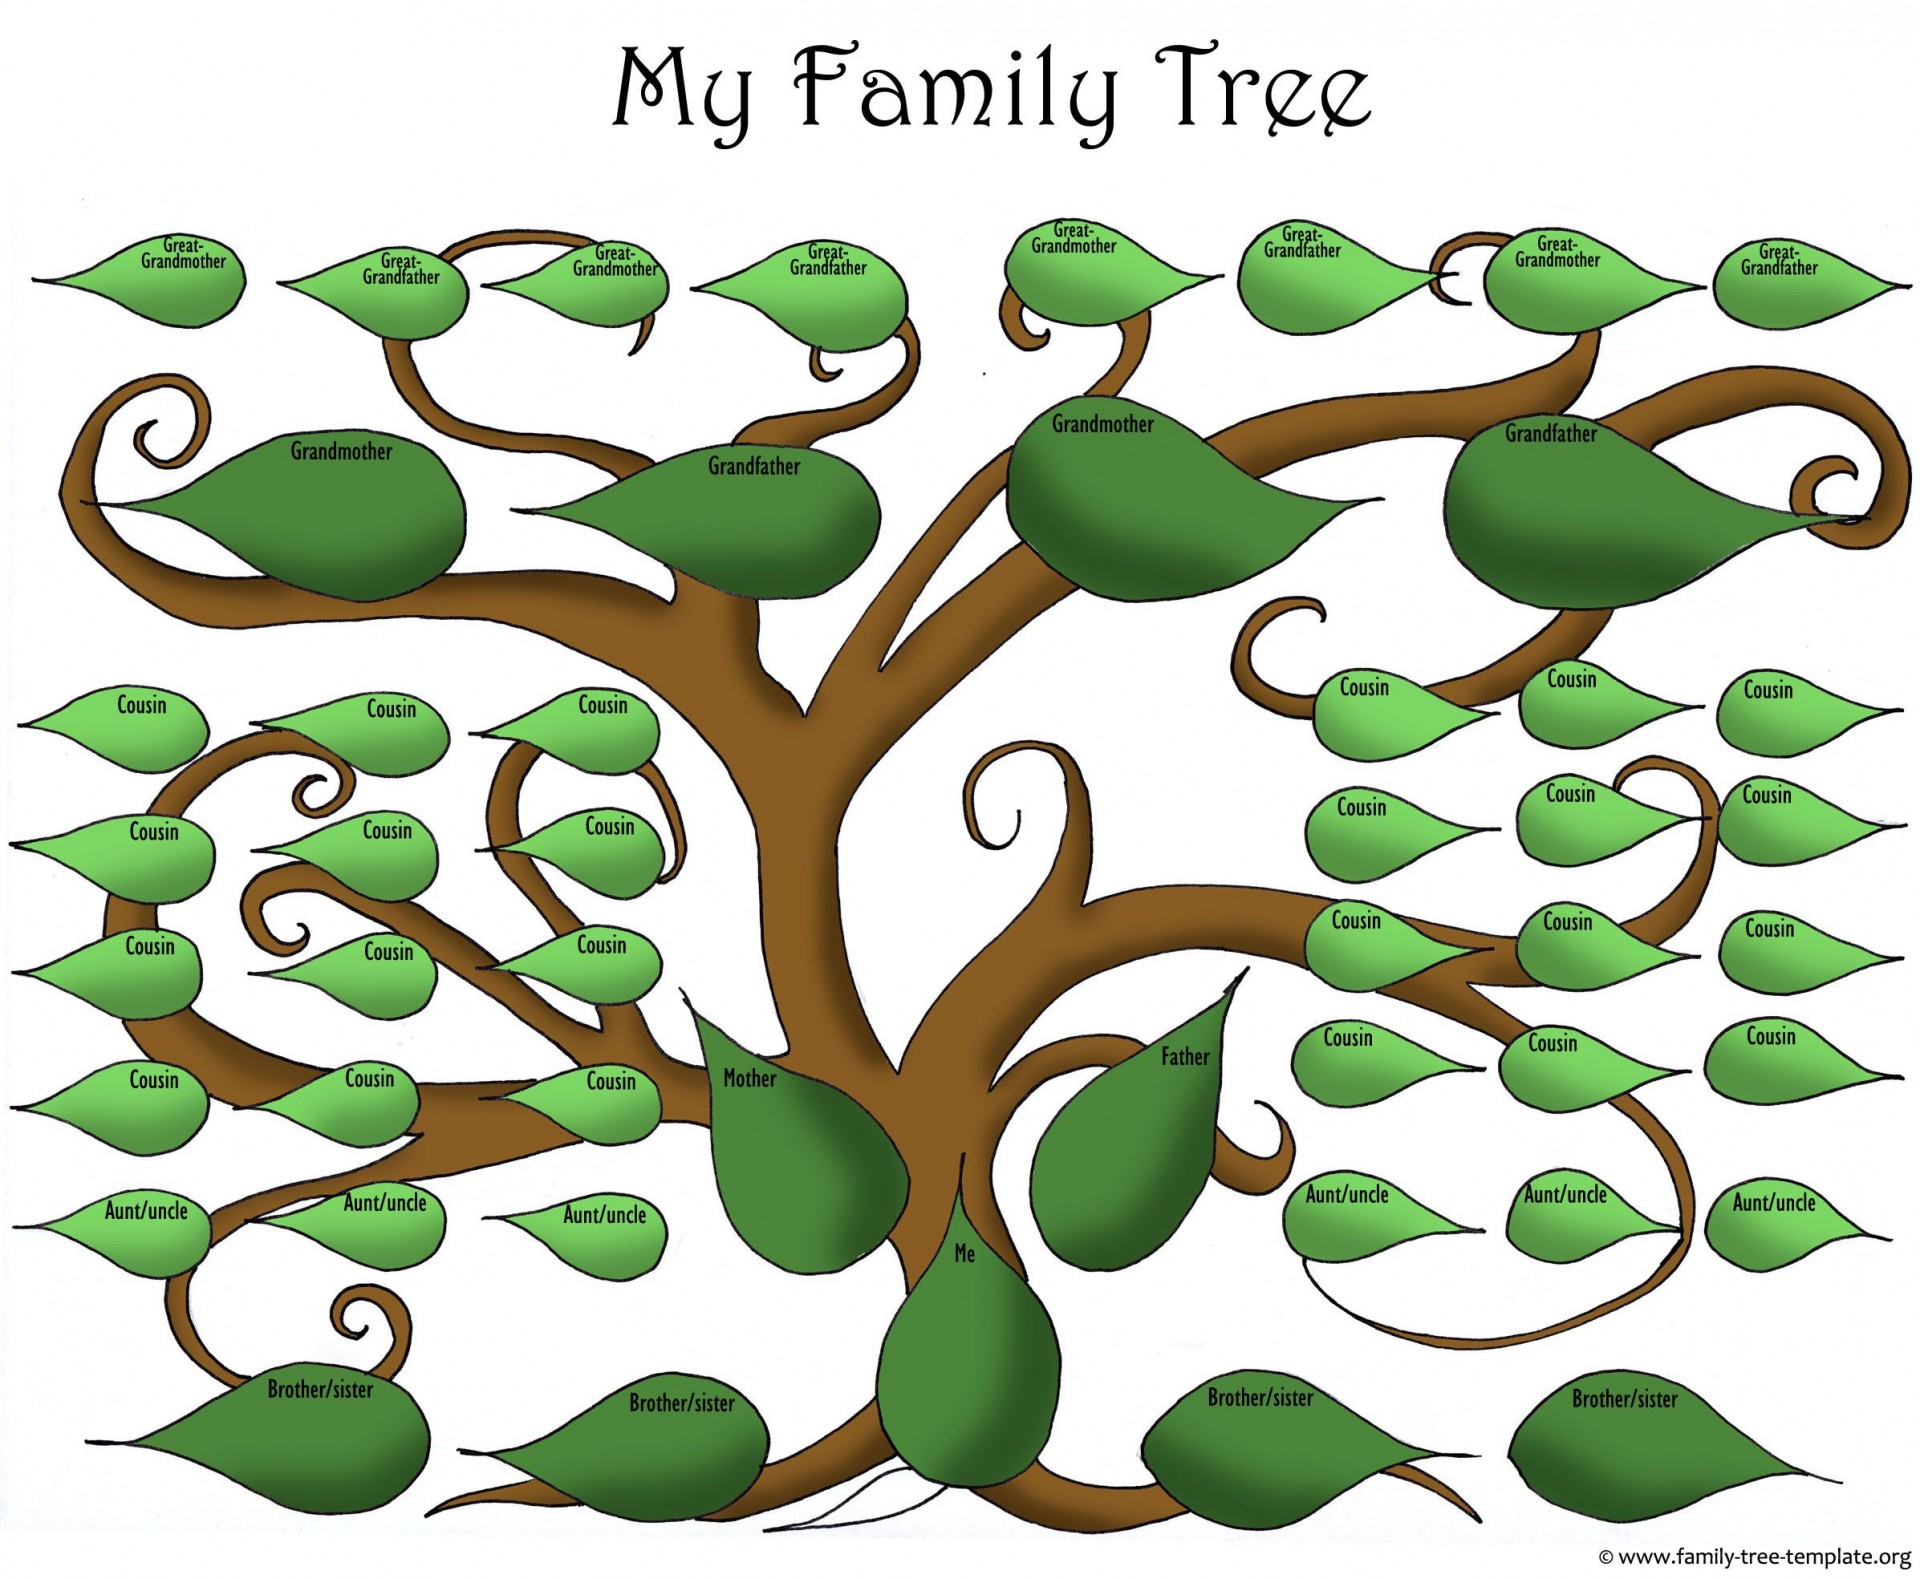 007 Incredible Free Online Family Tree Chart Template Idea 1920